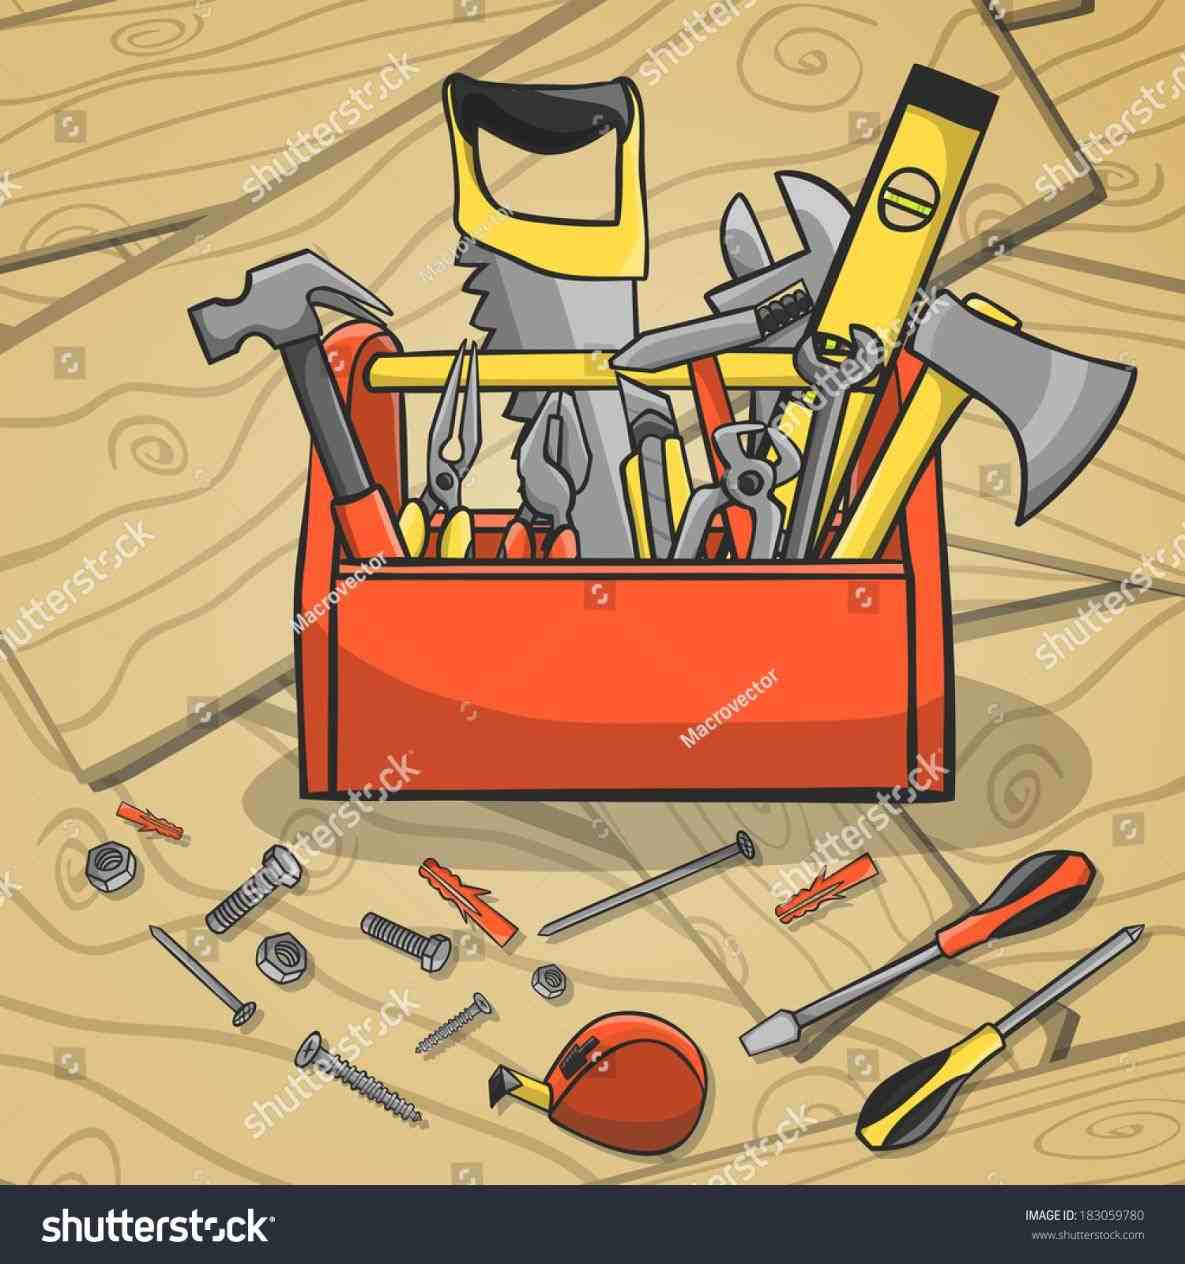 Carpentry clipart hammer nail. The images collection of